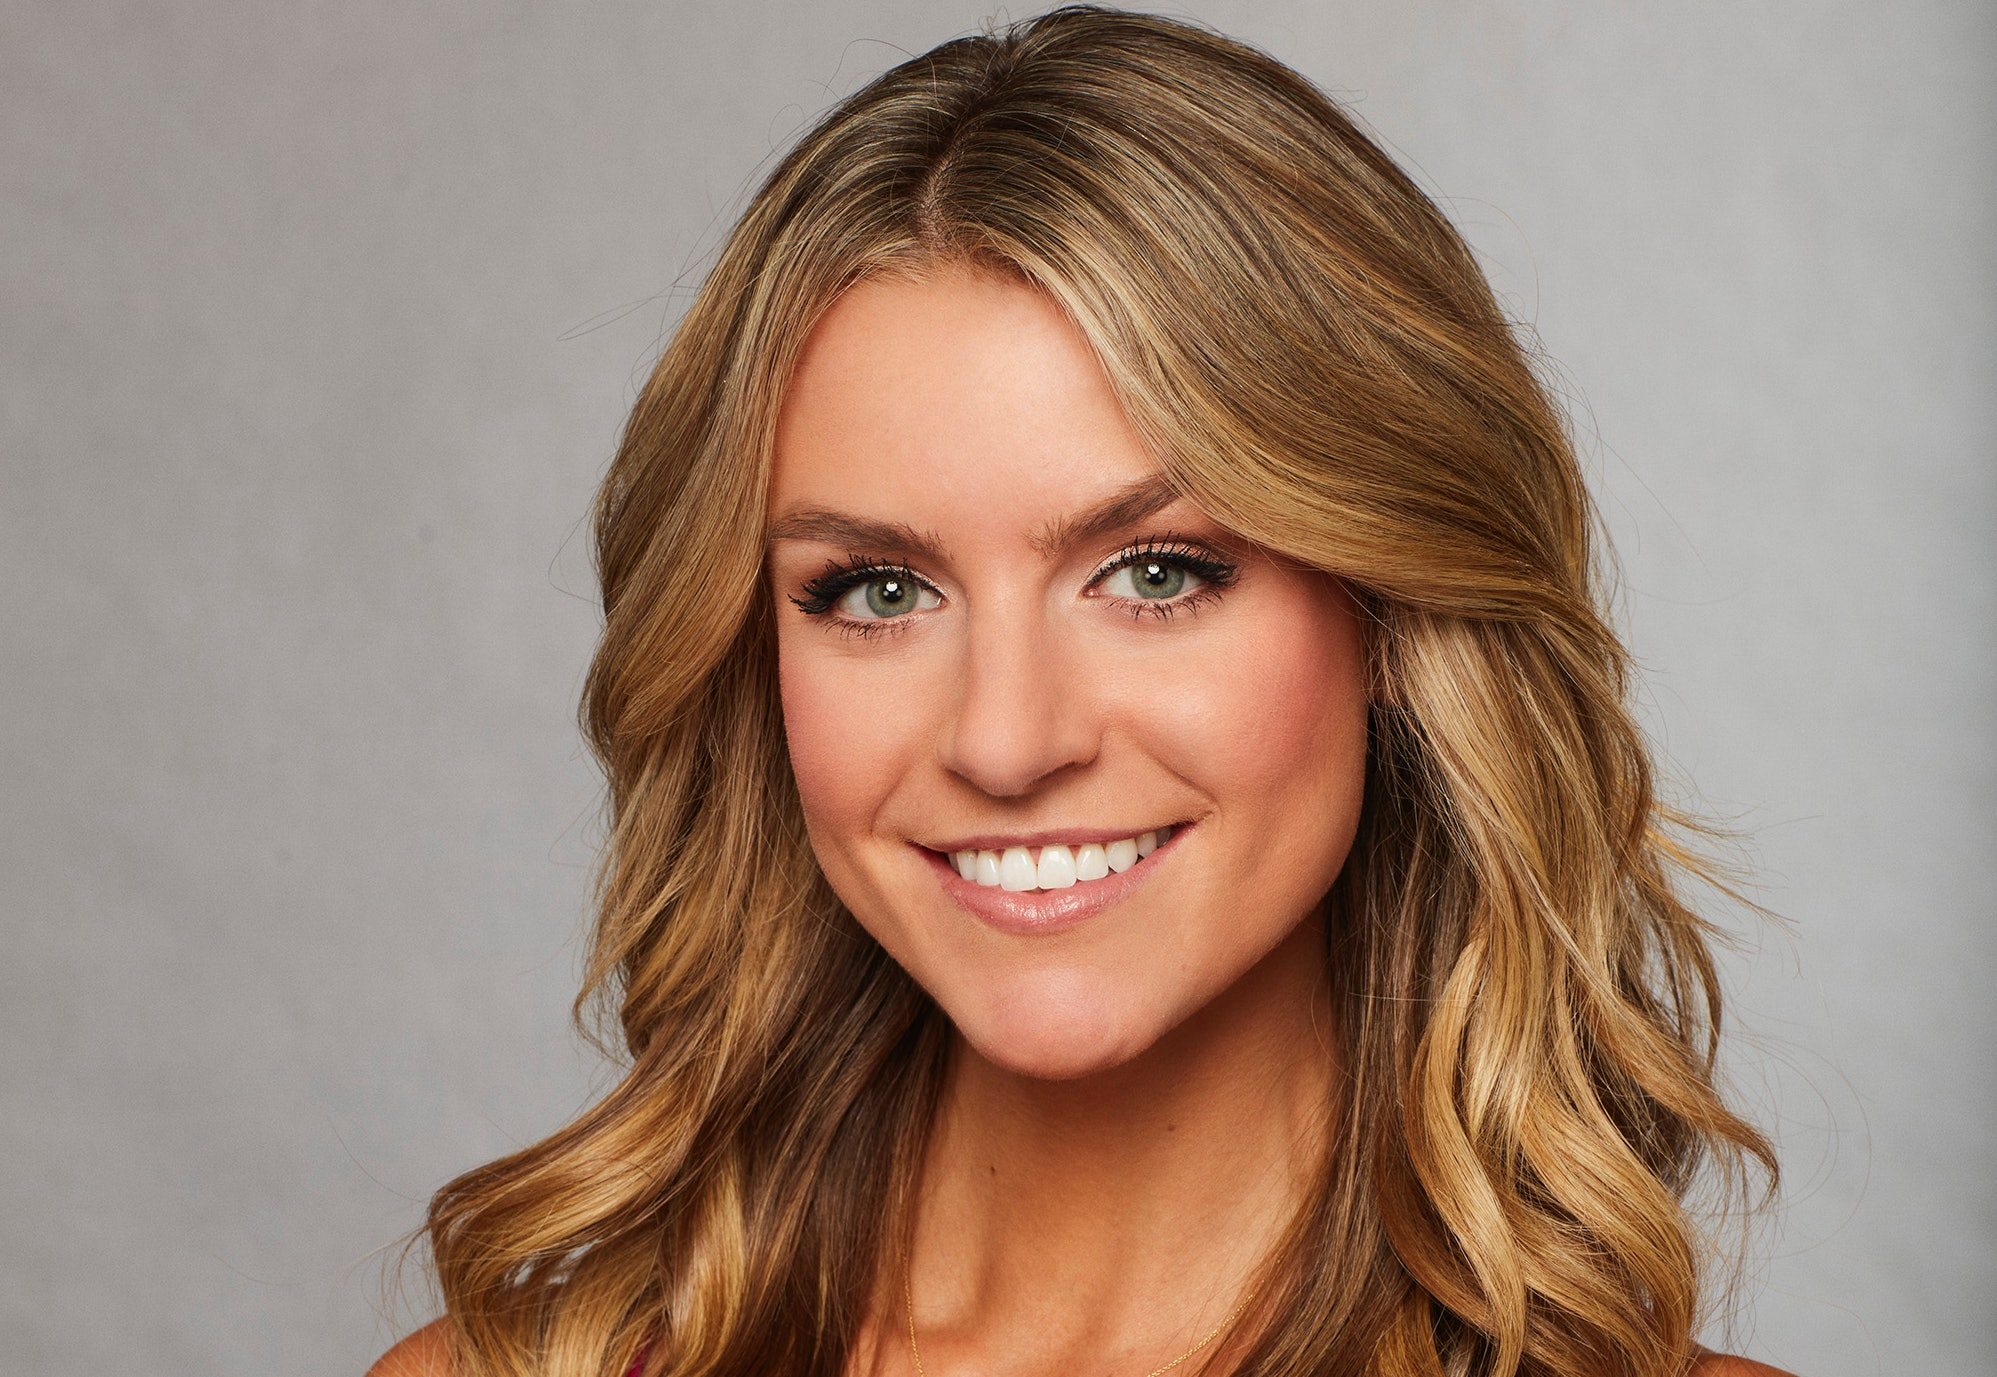 Britt from the bachelor 2019 who is she dating